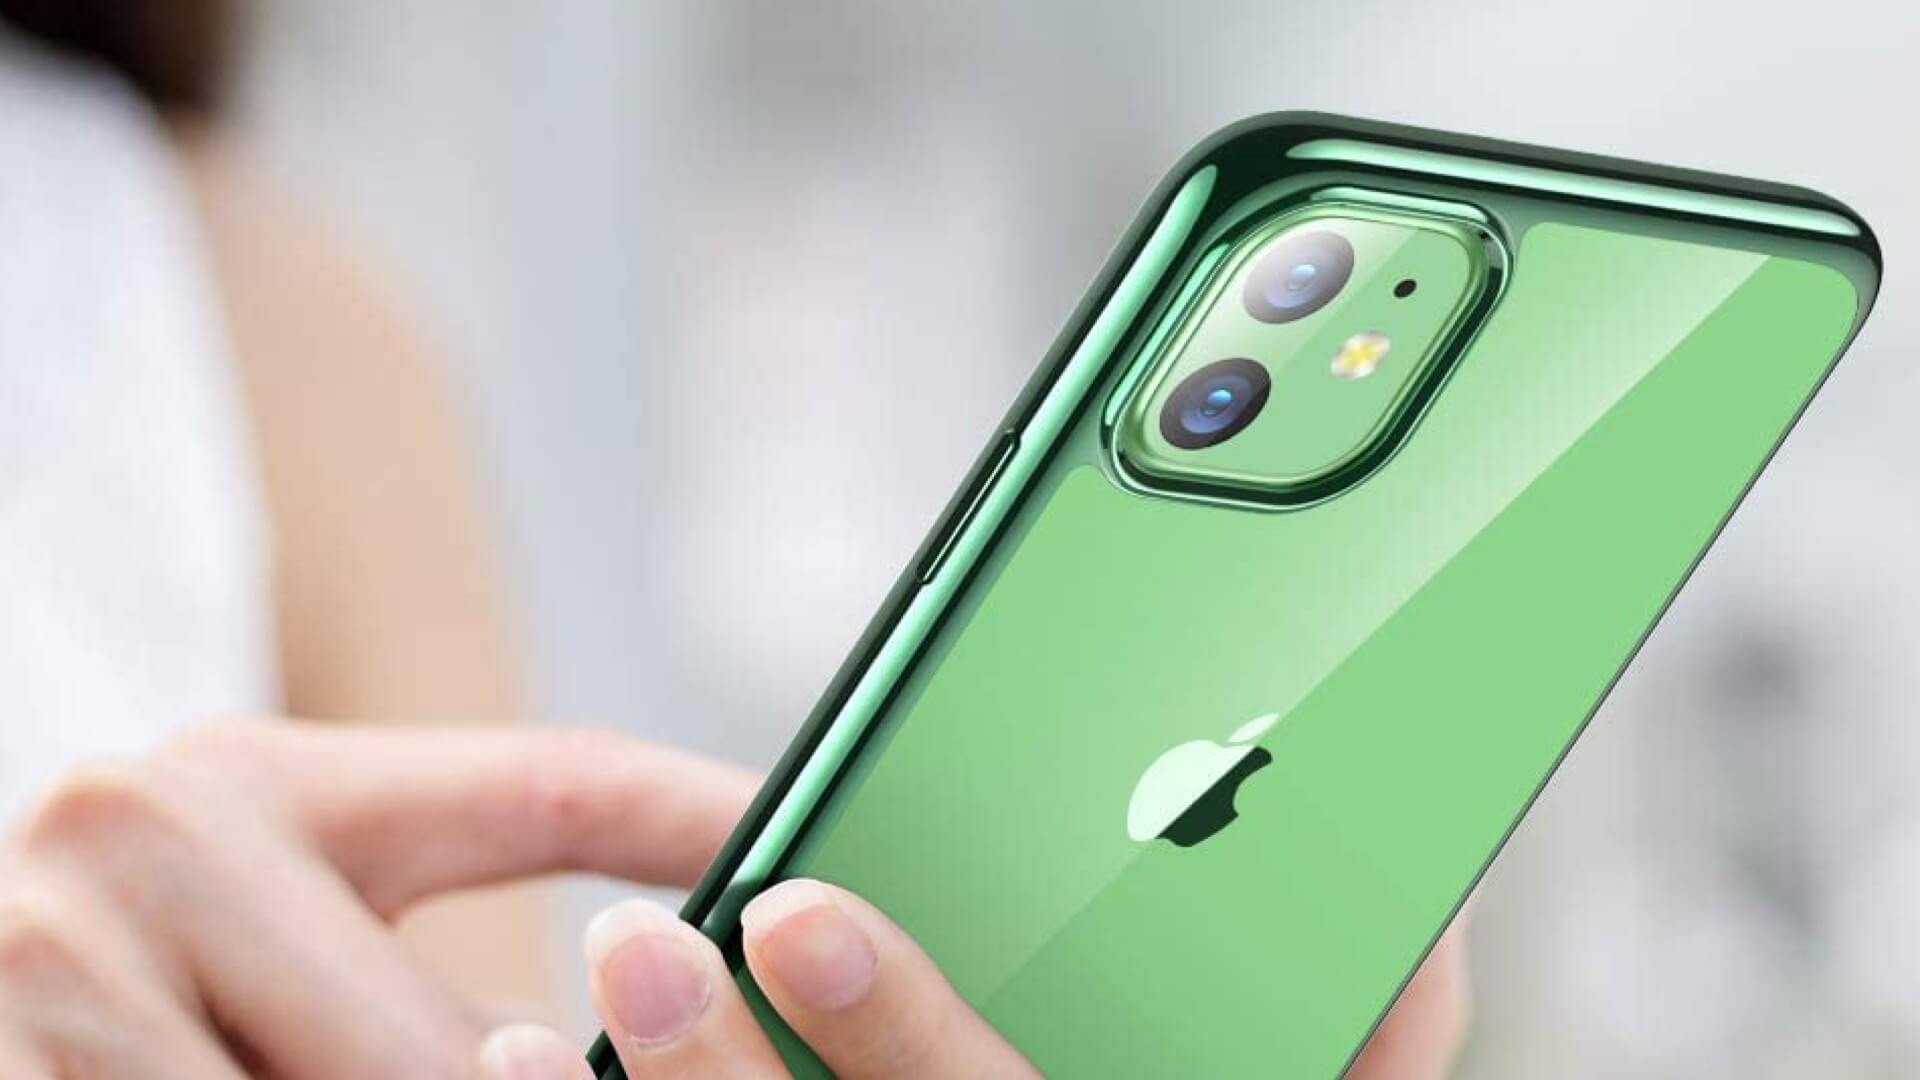 Bästa iPhone 11 Clear Cases 2020